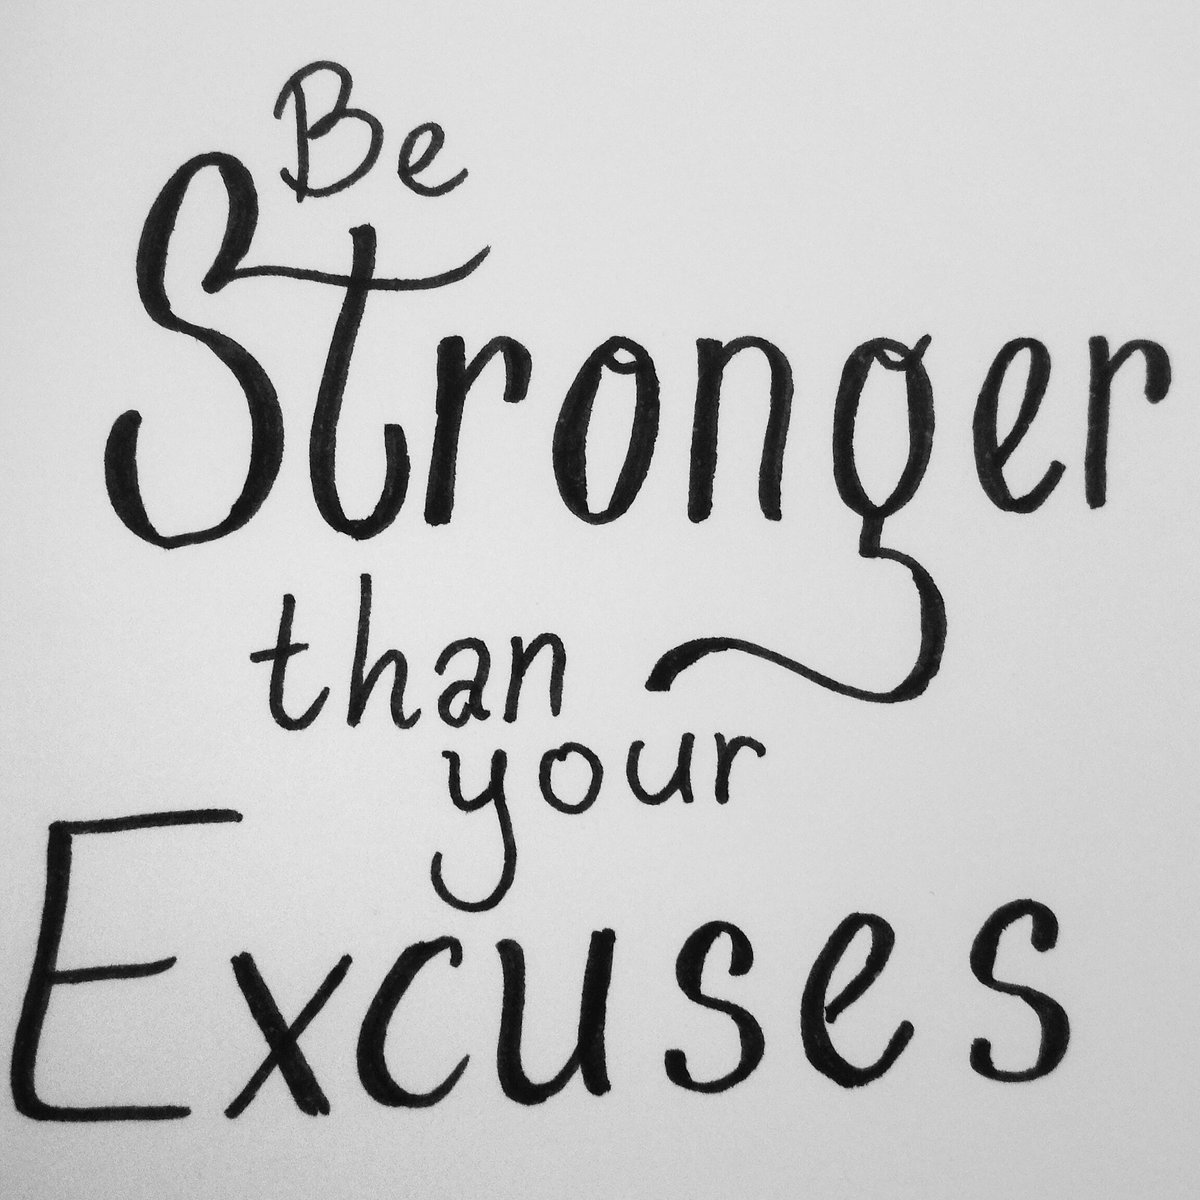 Be stronger than your excuses https://t.co/JhJkl8HyDt